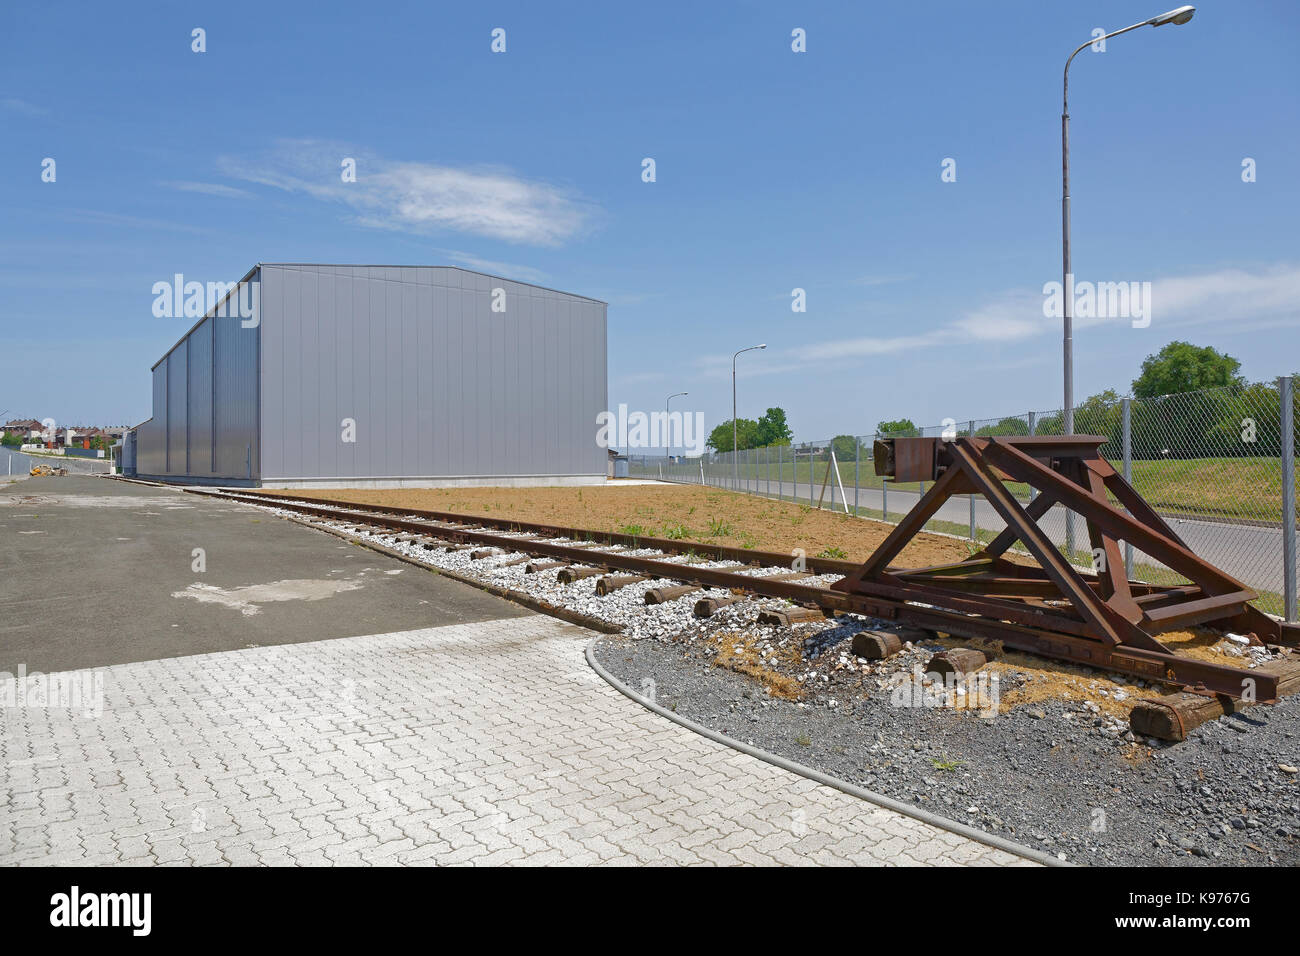 Distribution Warehouse Building With Railroad Tracks - Stock Image